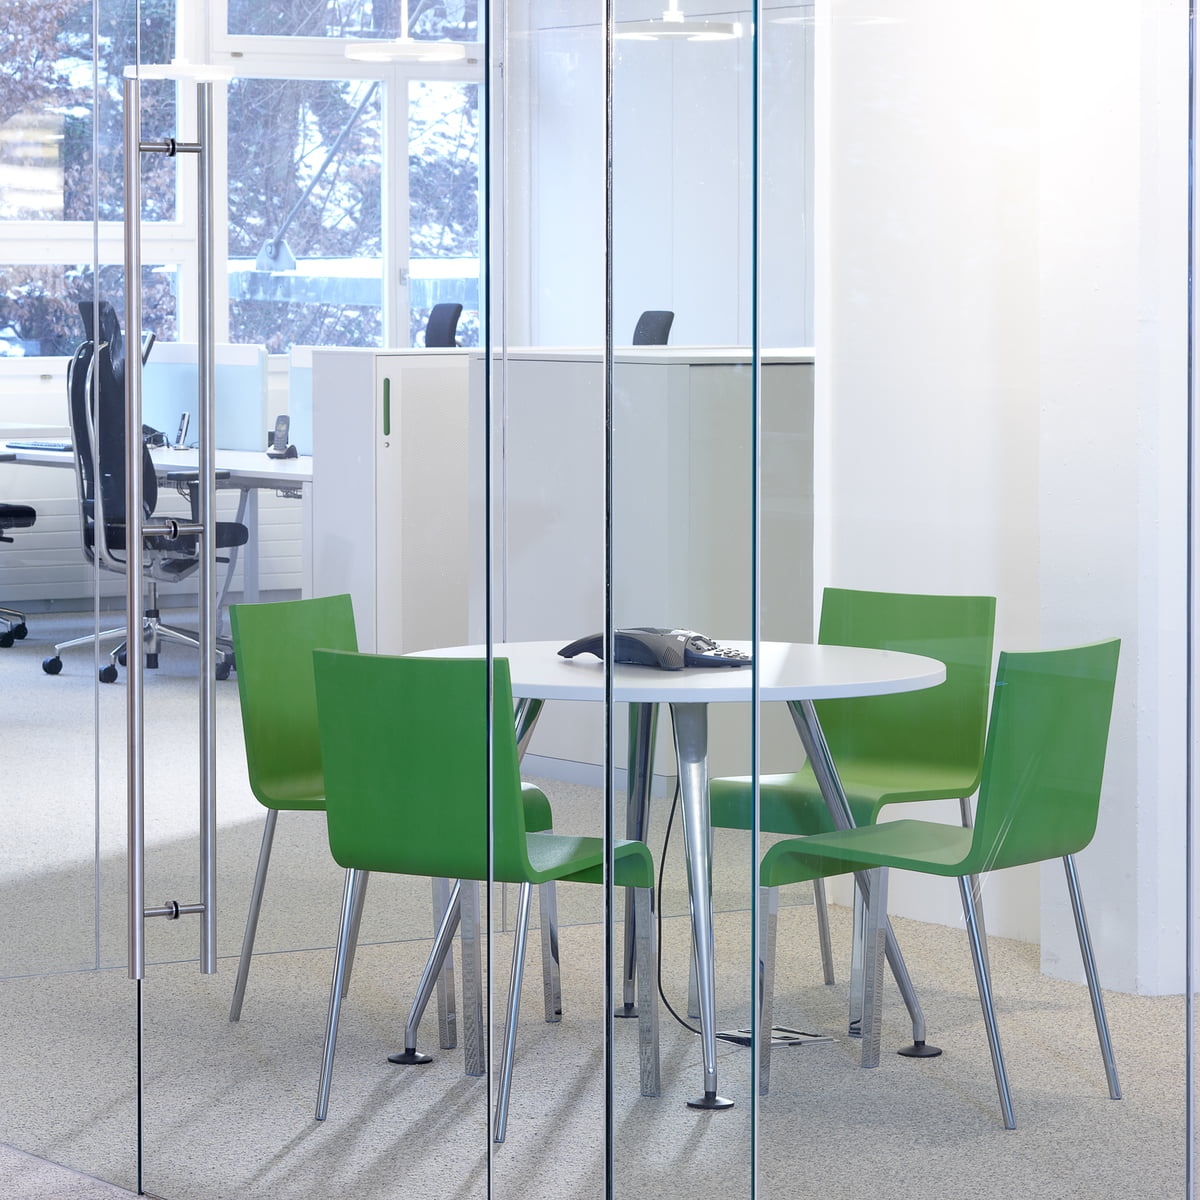 Discover the Vitra 03 Chair in our interior design shop – Vitra 03 Chair